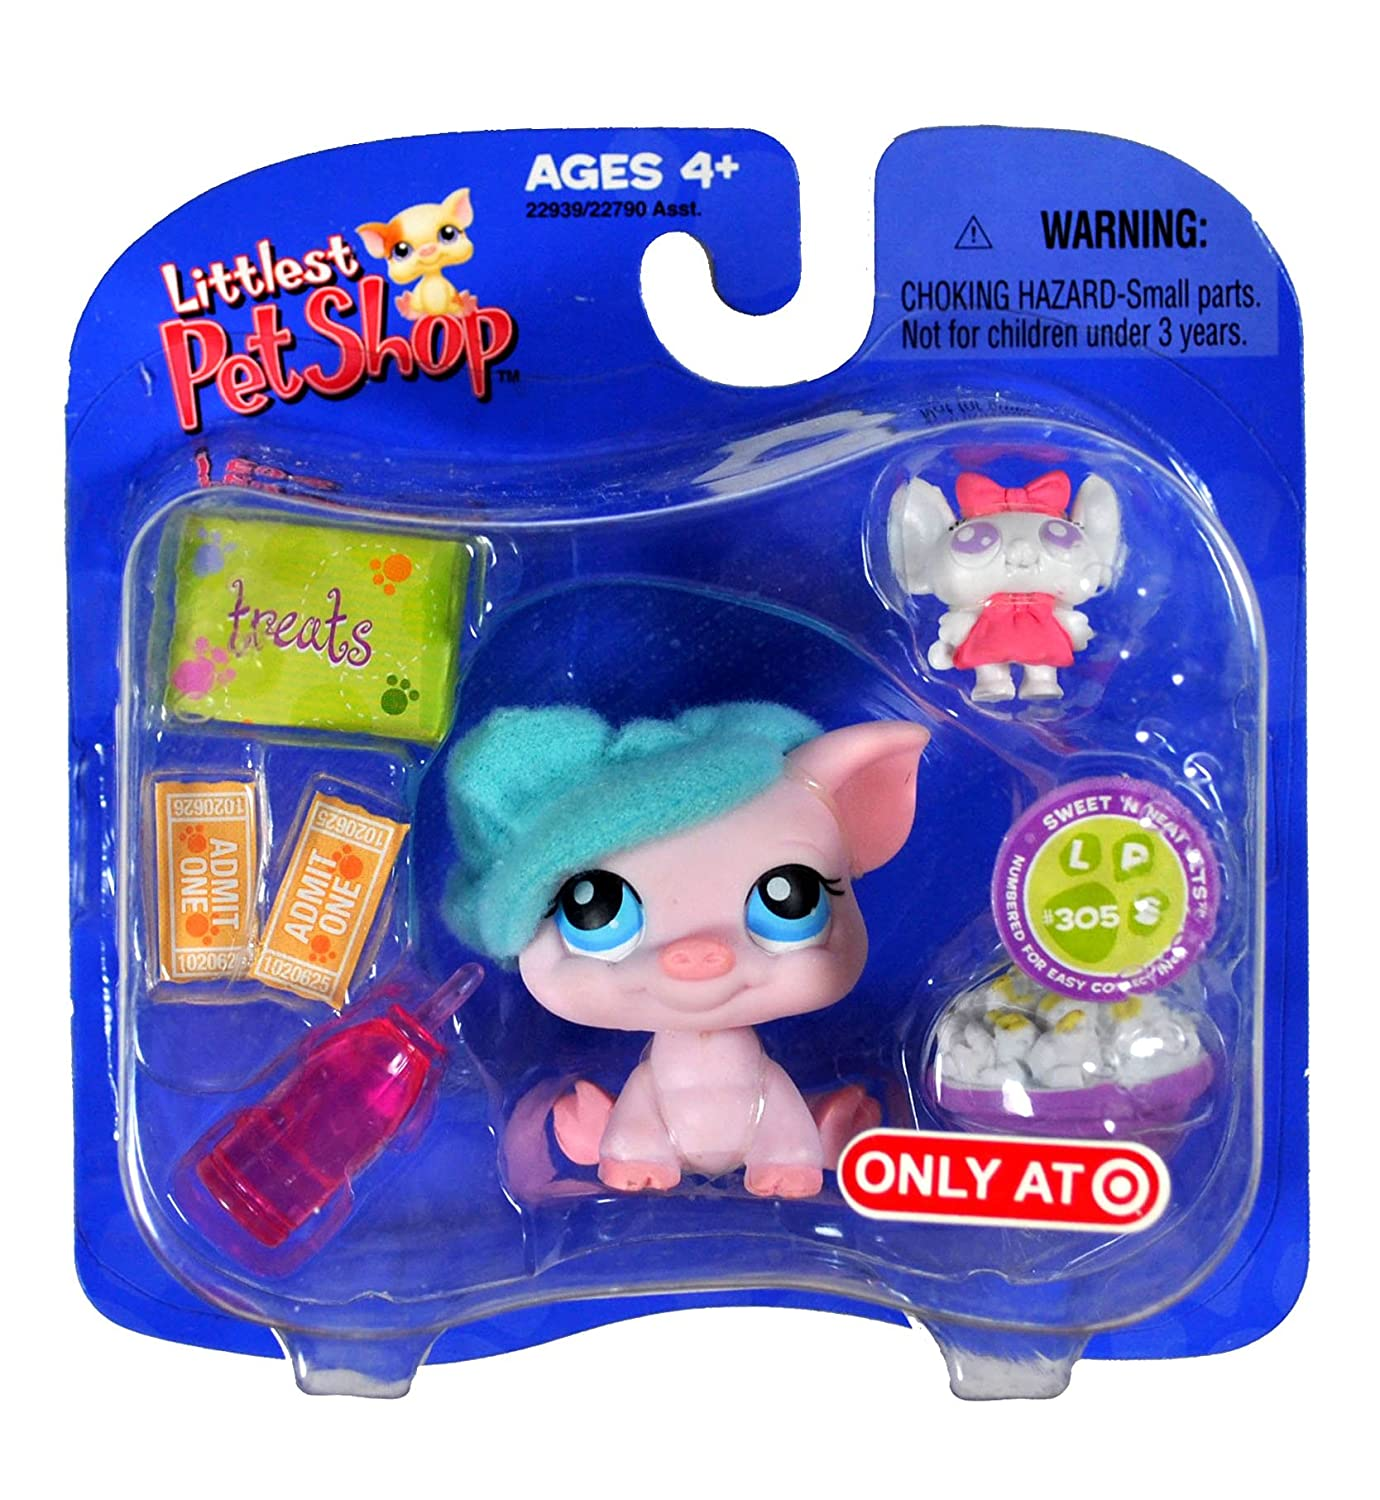 Hasbro Year Exclusive 2006 Littlest Pet Shop with Exclusive Single Pack